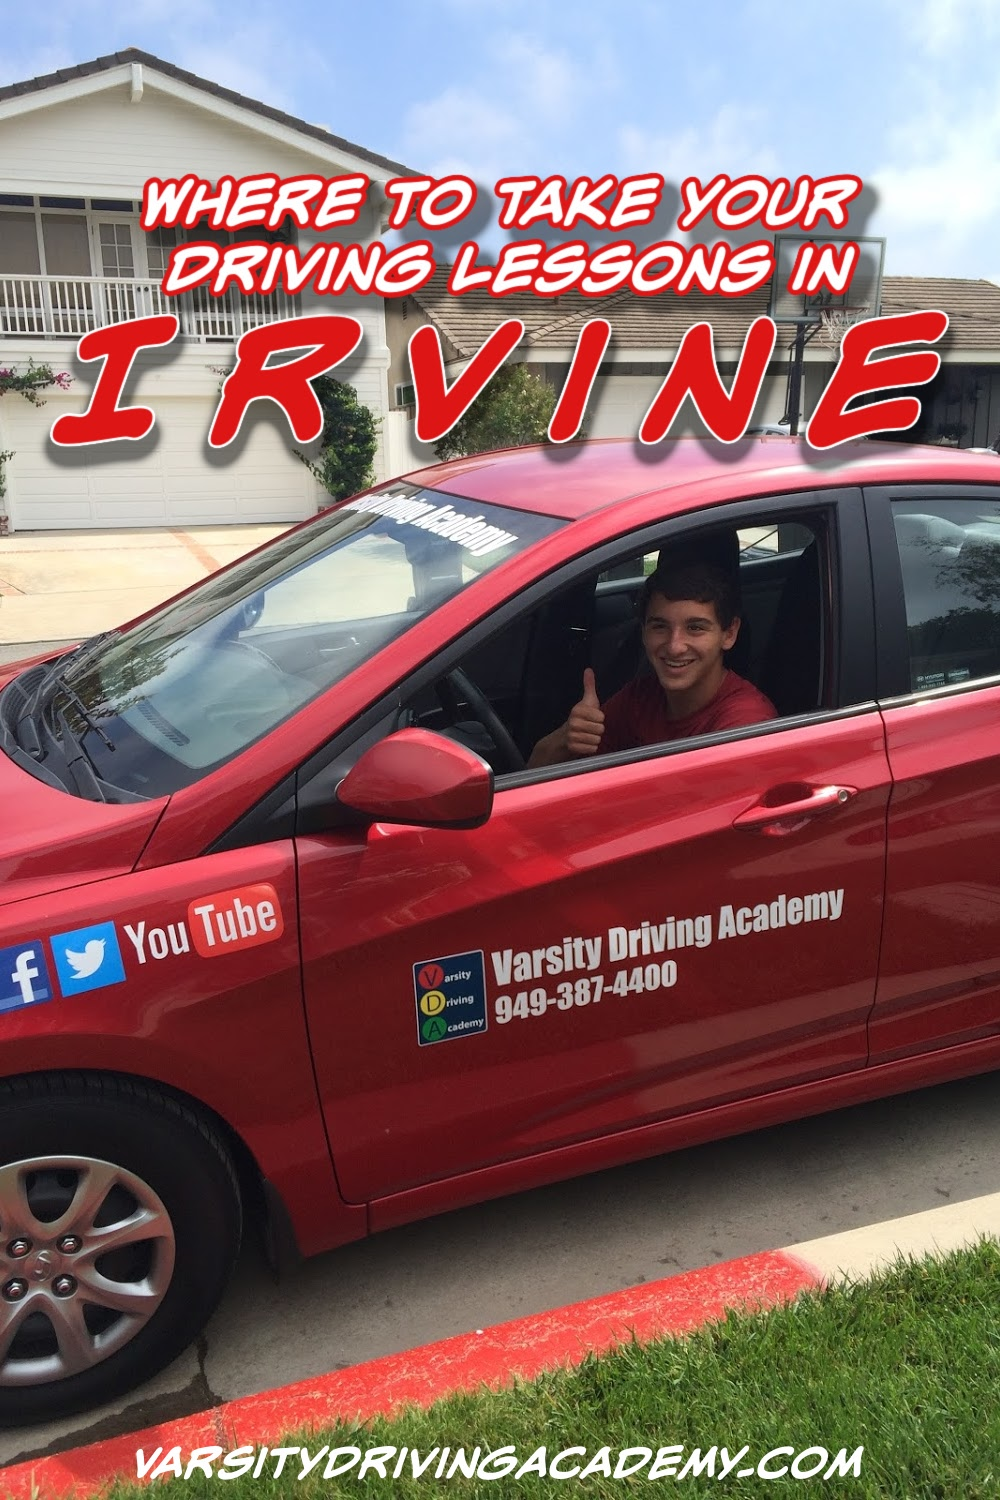 Varsity Driving Academy offers the best Irvine driving lessons for teens and adults who want or need to pass through Irvine drivers ed.